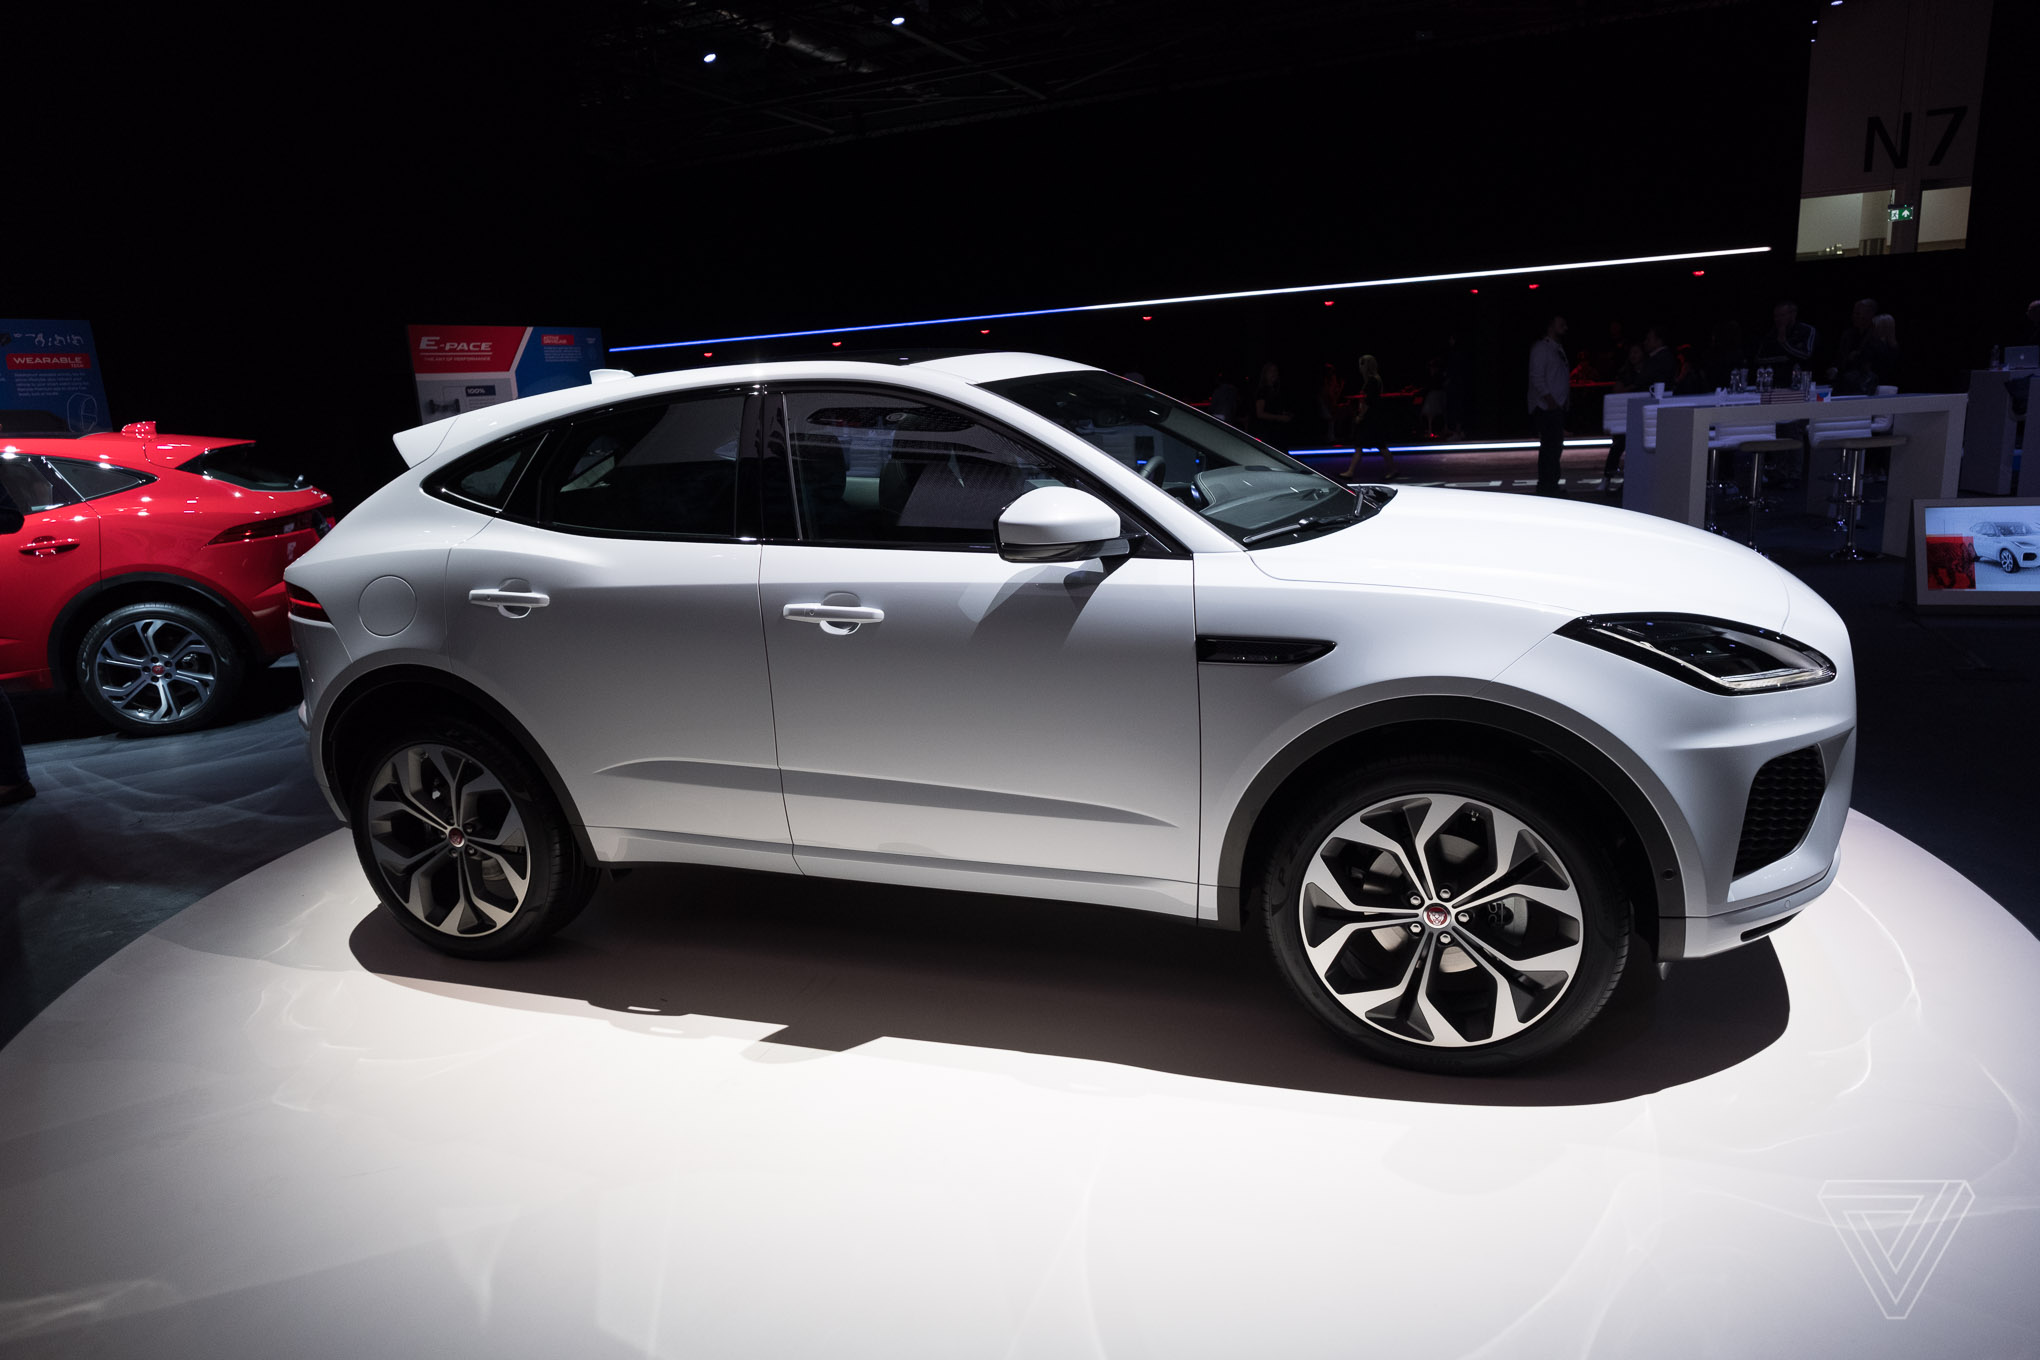 jaguar reveals e pace the crossover suv for millennial couples my cms. Black Bedroom Furniture Sets. Home Design Ideas